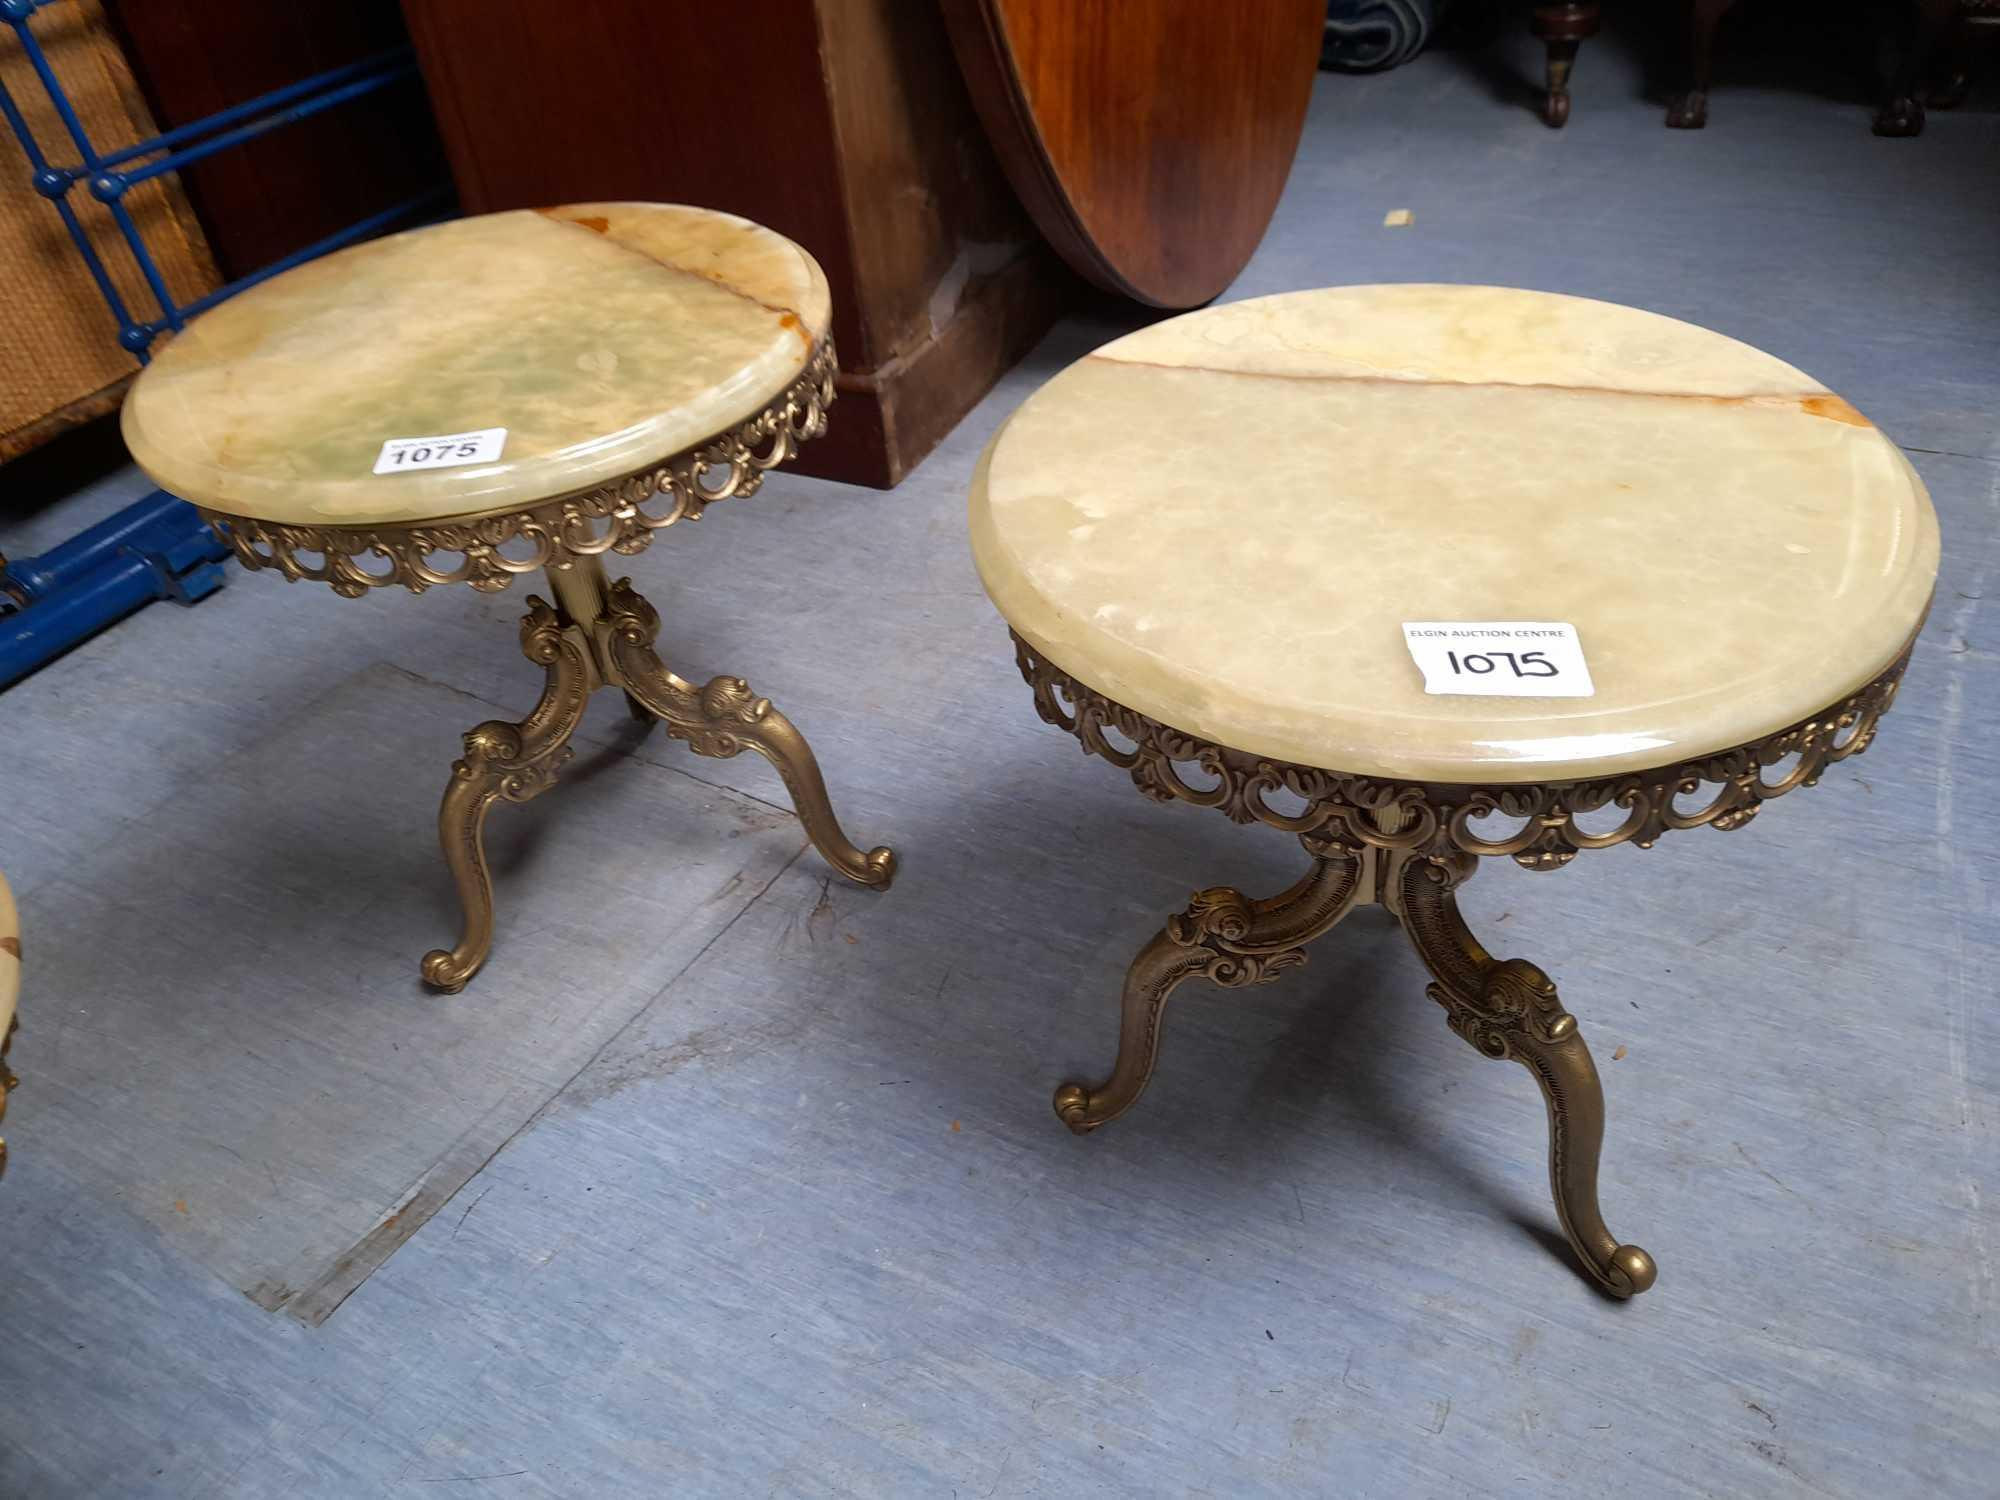 2 SMALL ONYX TABLES